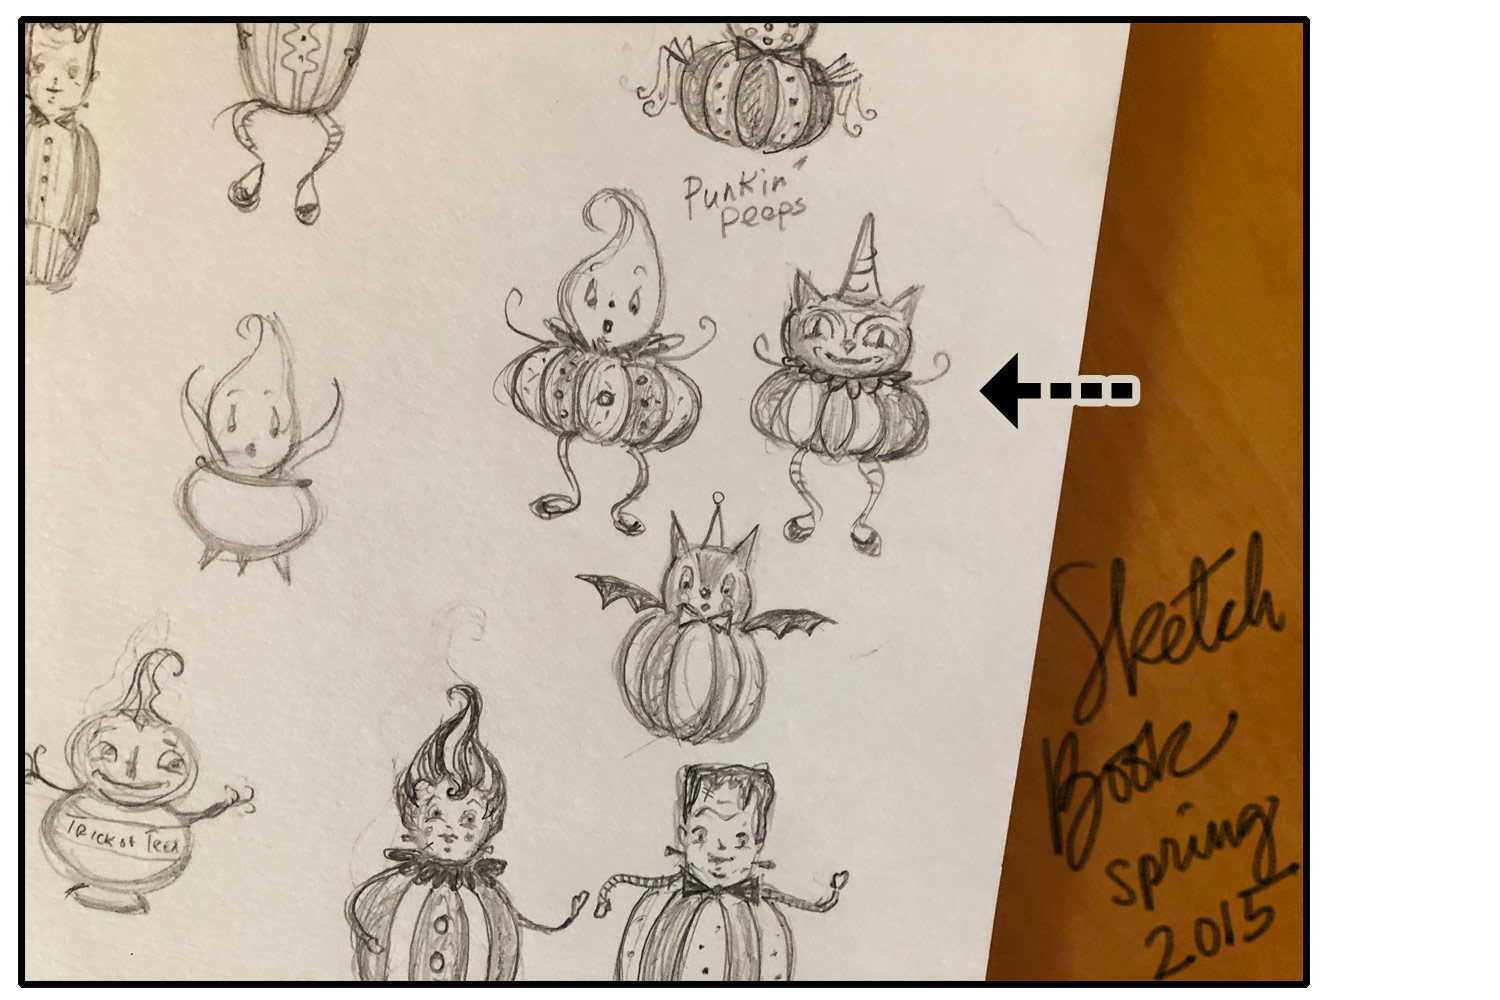 This is a photo snap from an older sketch book of ideas from 2015.... If you're familiar with my Halloween product line through Transpac Imports, you'll recognize several of my characters here in their early, raw stages- straight from imagination to paper! I guess you could say that this is where they were born :) And notice at this initial stage, the black cat has arms and legs...